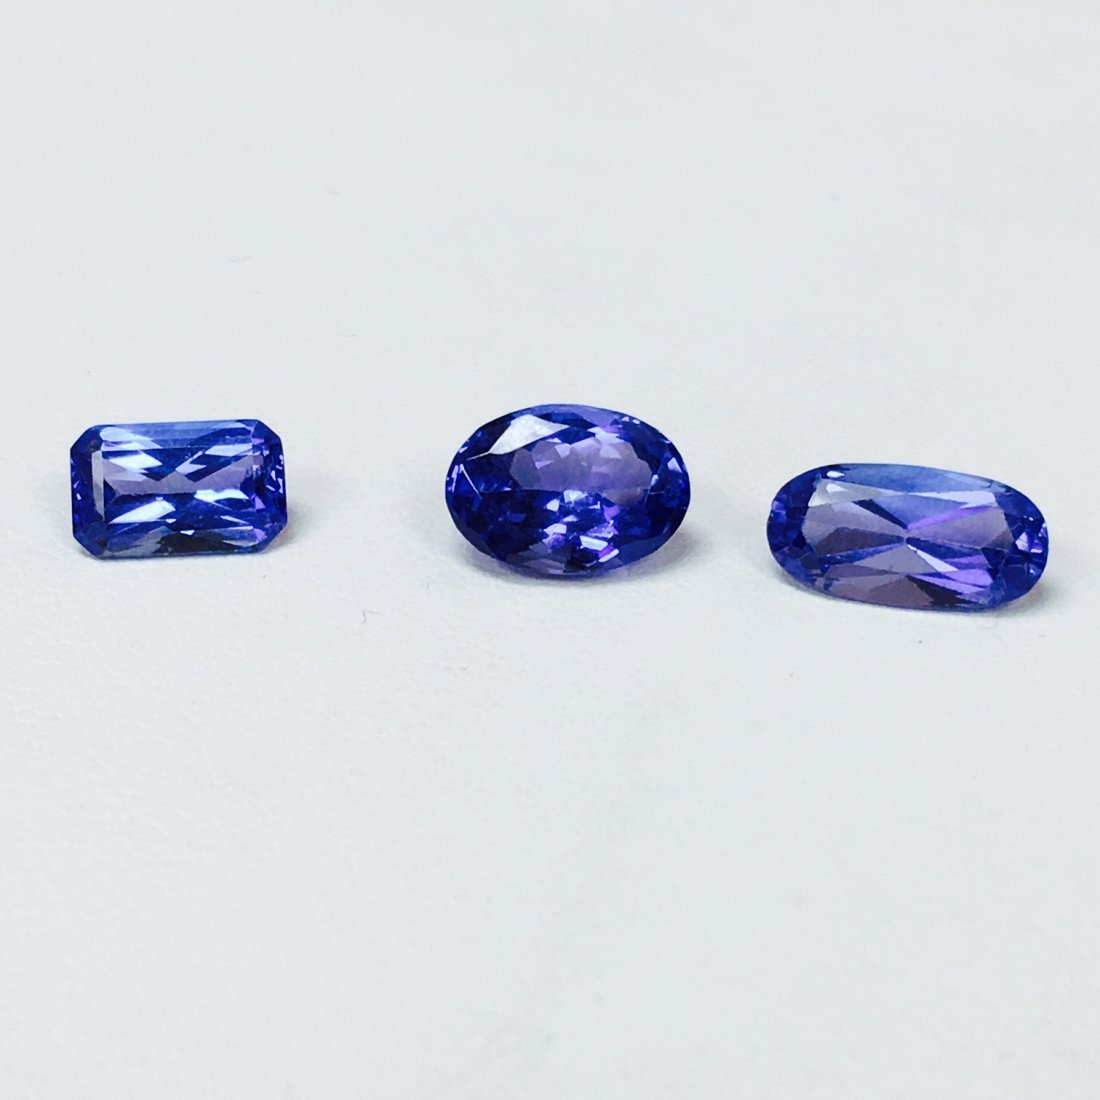 blue tanzanite x intense oval shop gemstones loose sale colored violetish cut